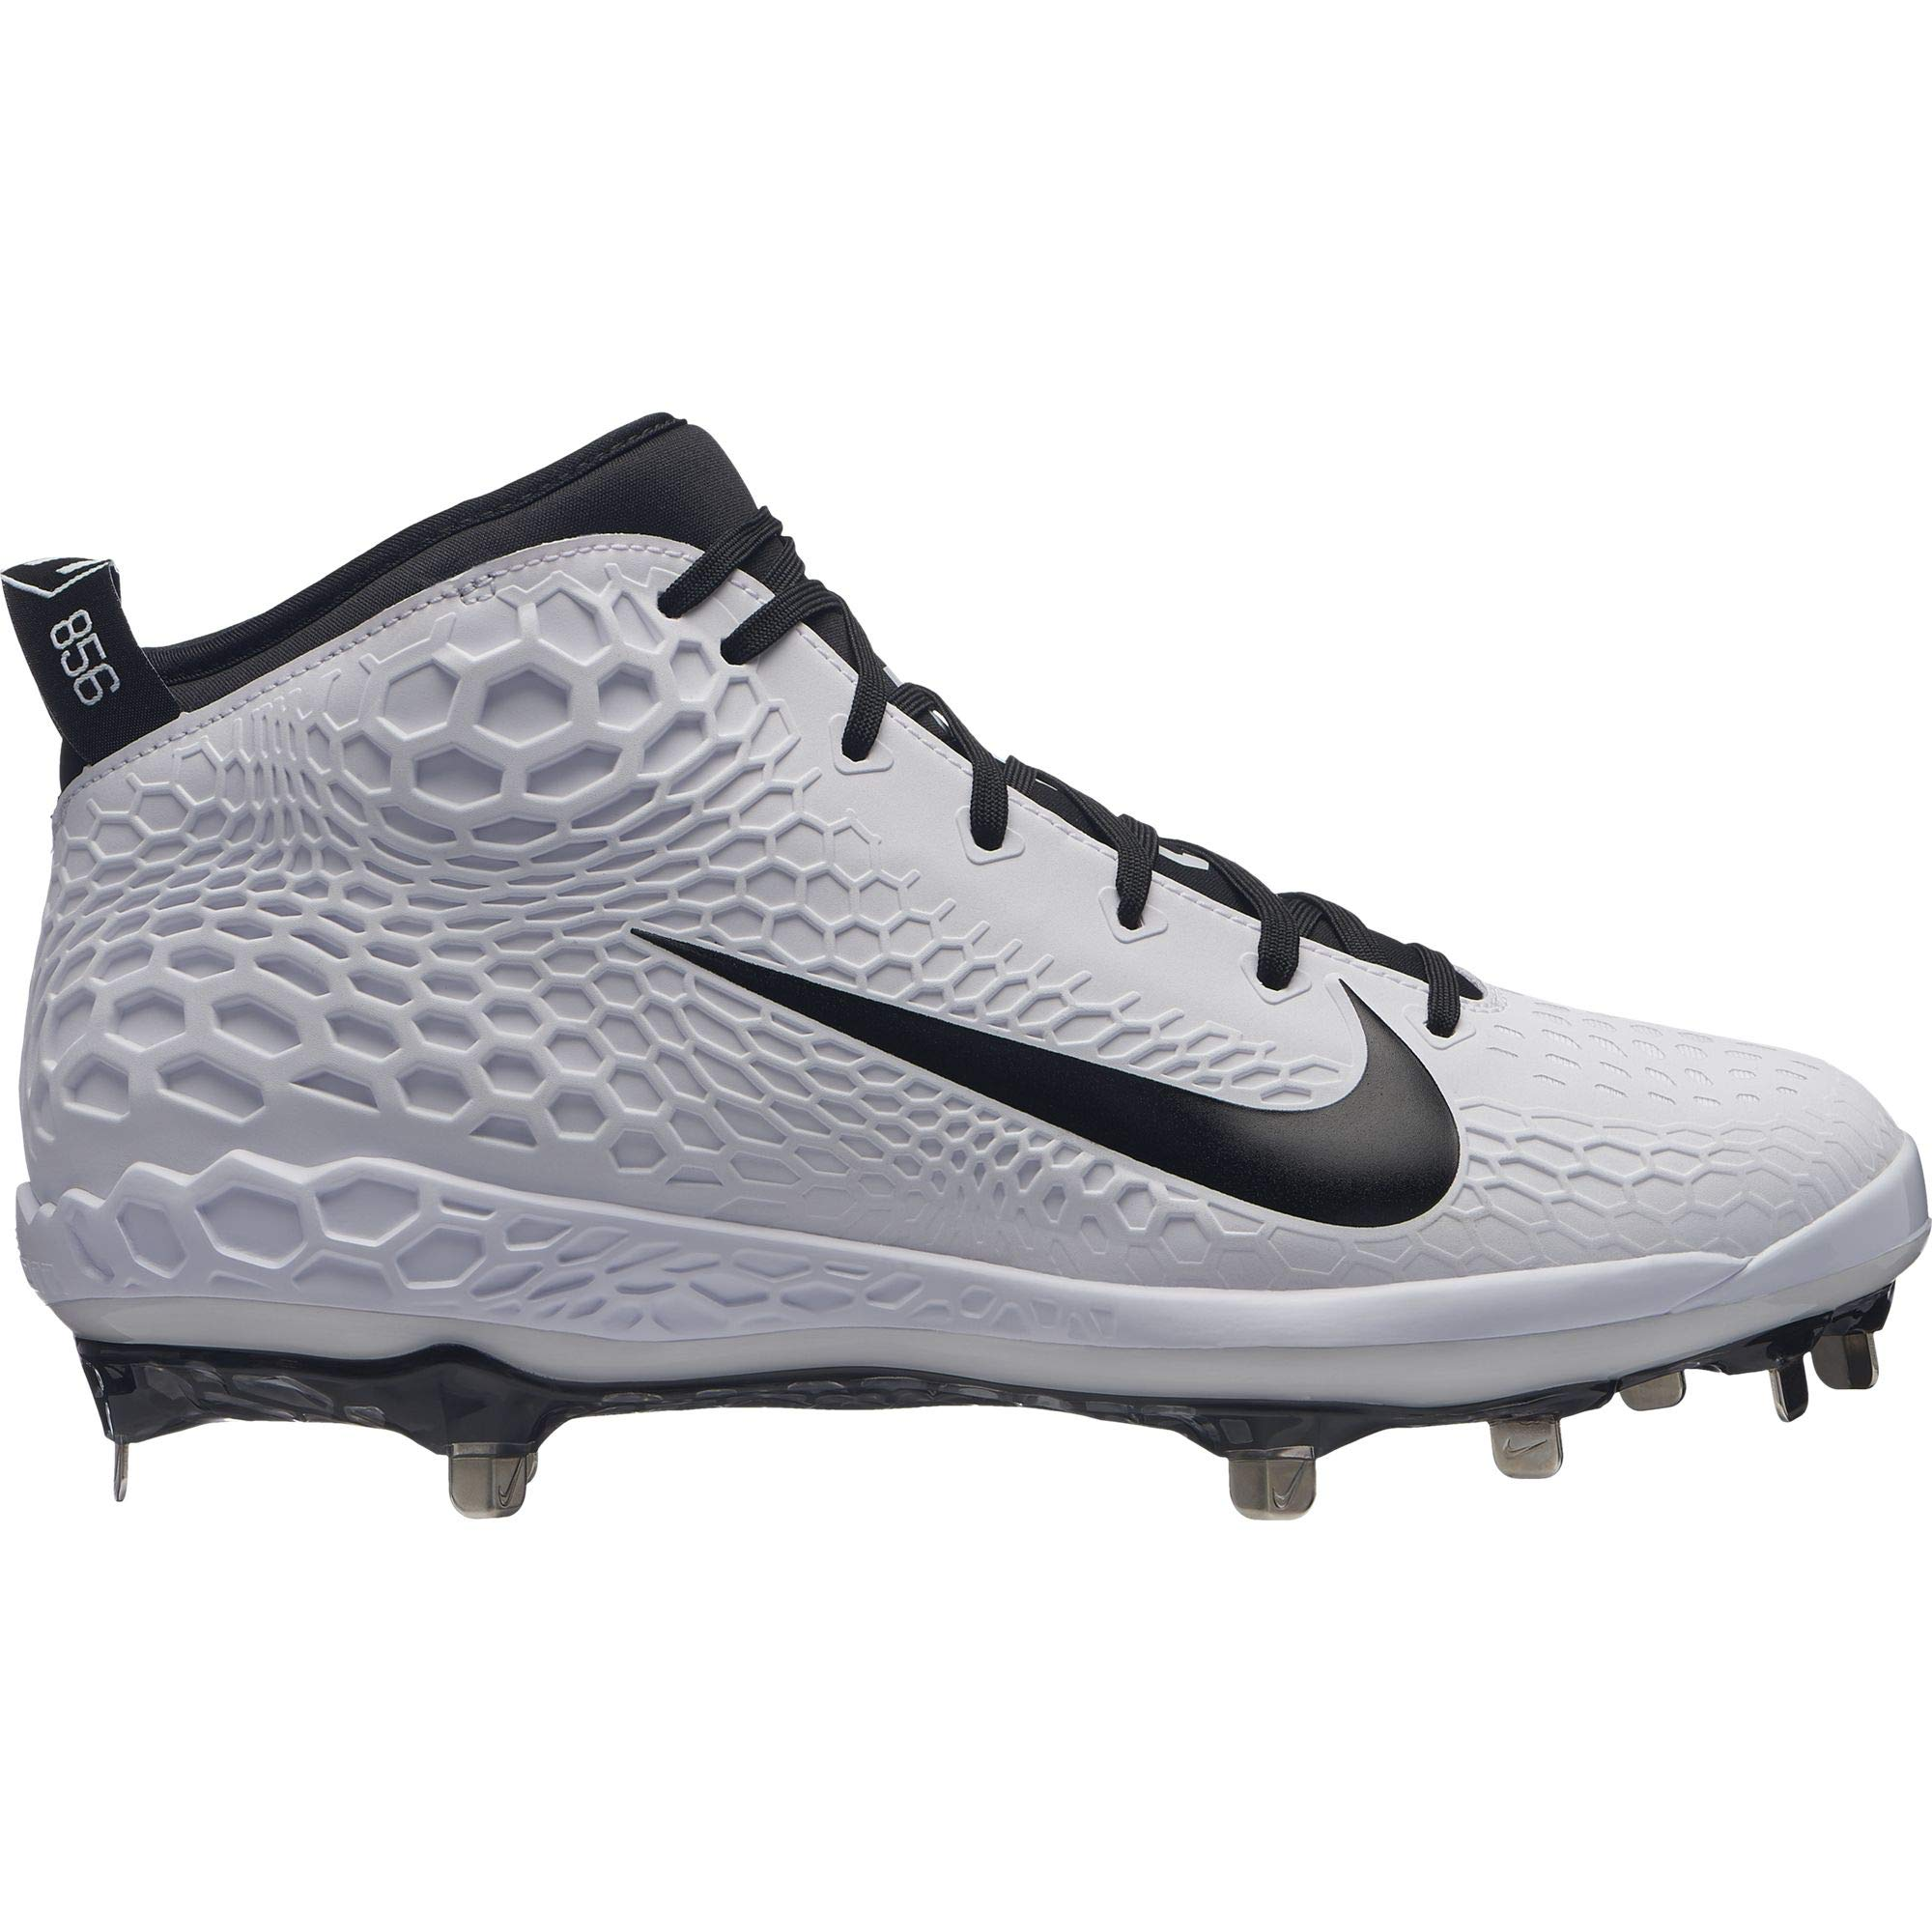 Nike Men's Force Zoom Trout 5 Metal Baseball Cleat (9 M US, White/Black)